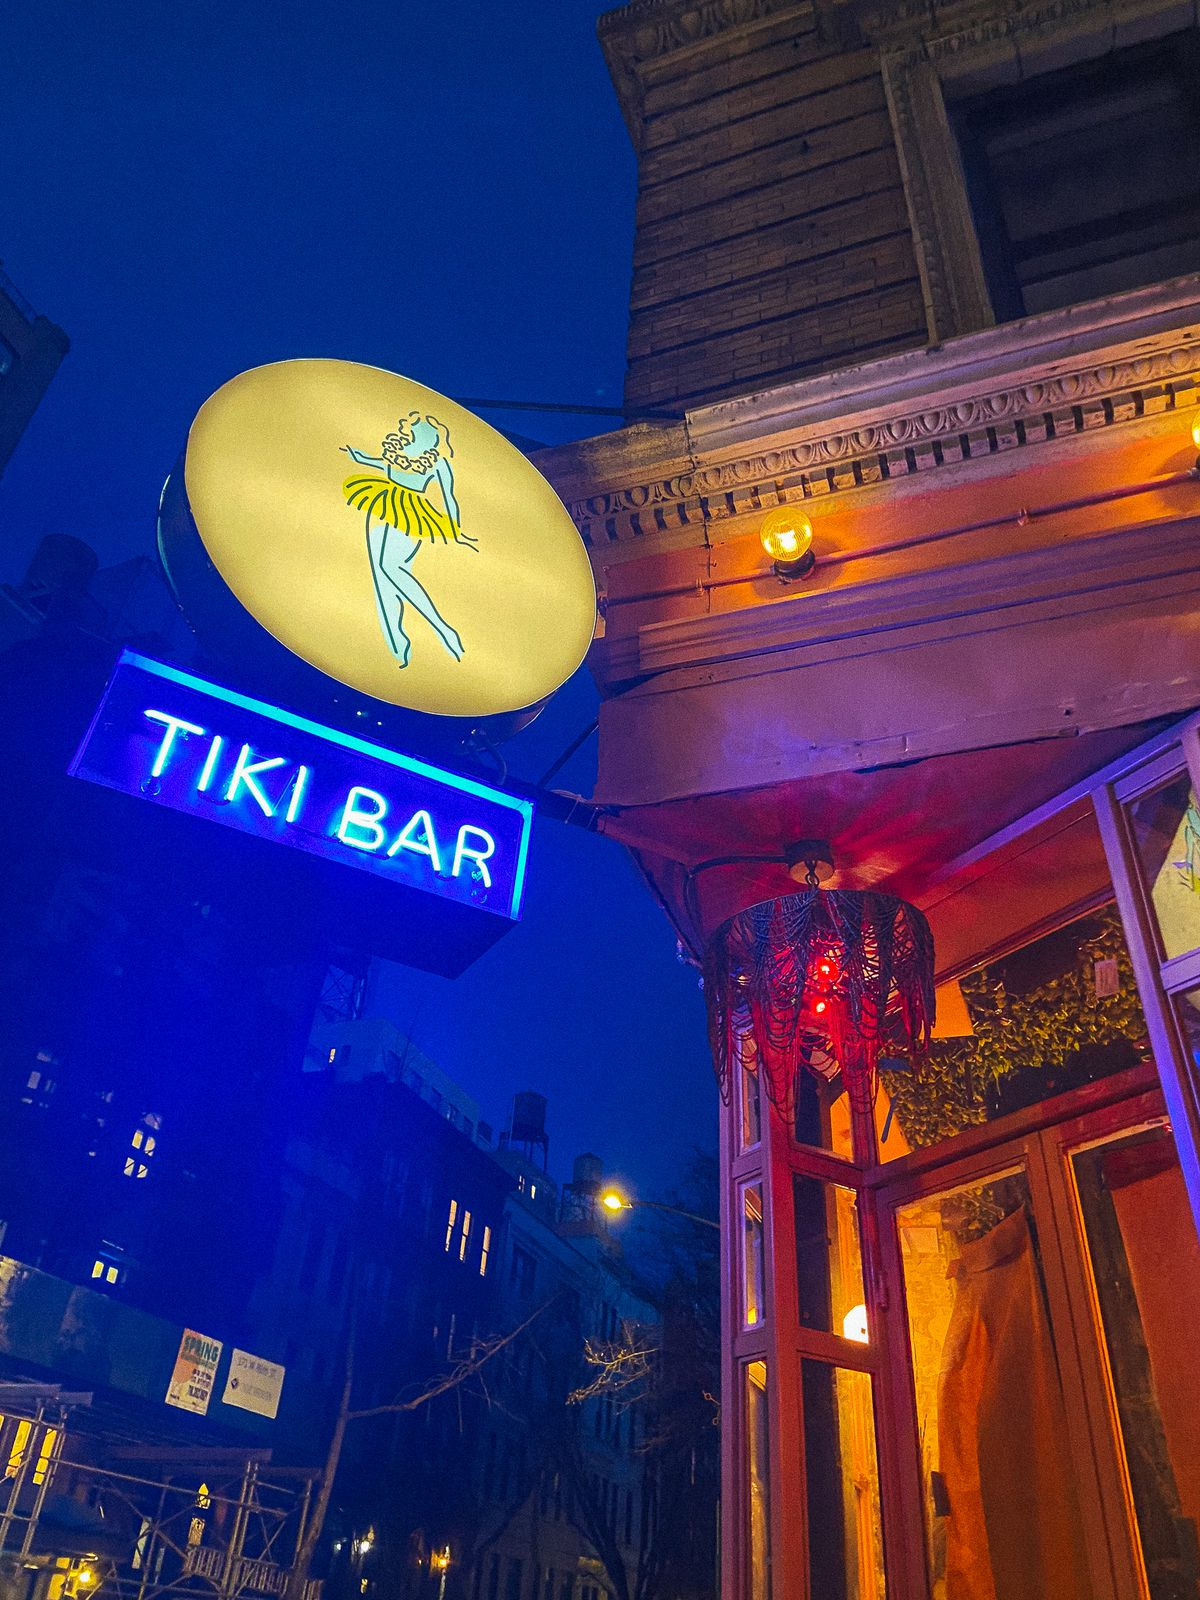 A blue neon sign reads tiki chick. Above it is a round sign with a woman wearing a lei and a hula skirt.